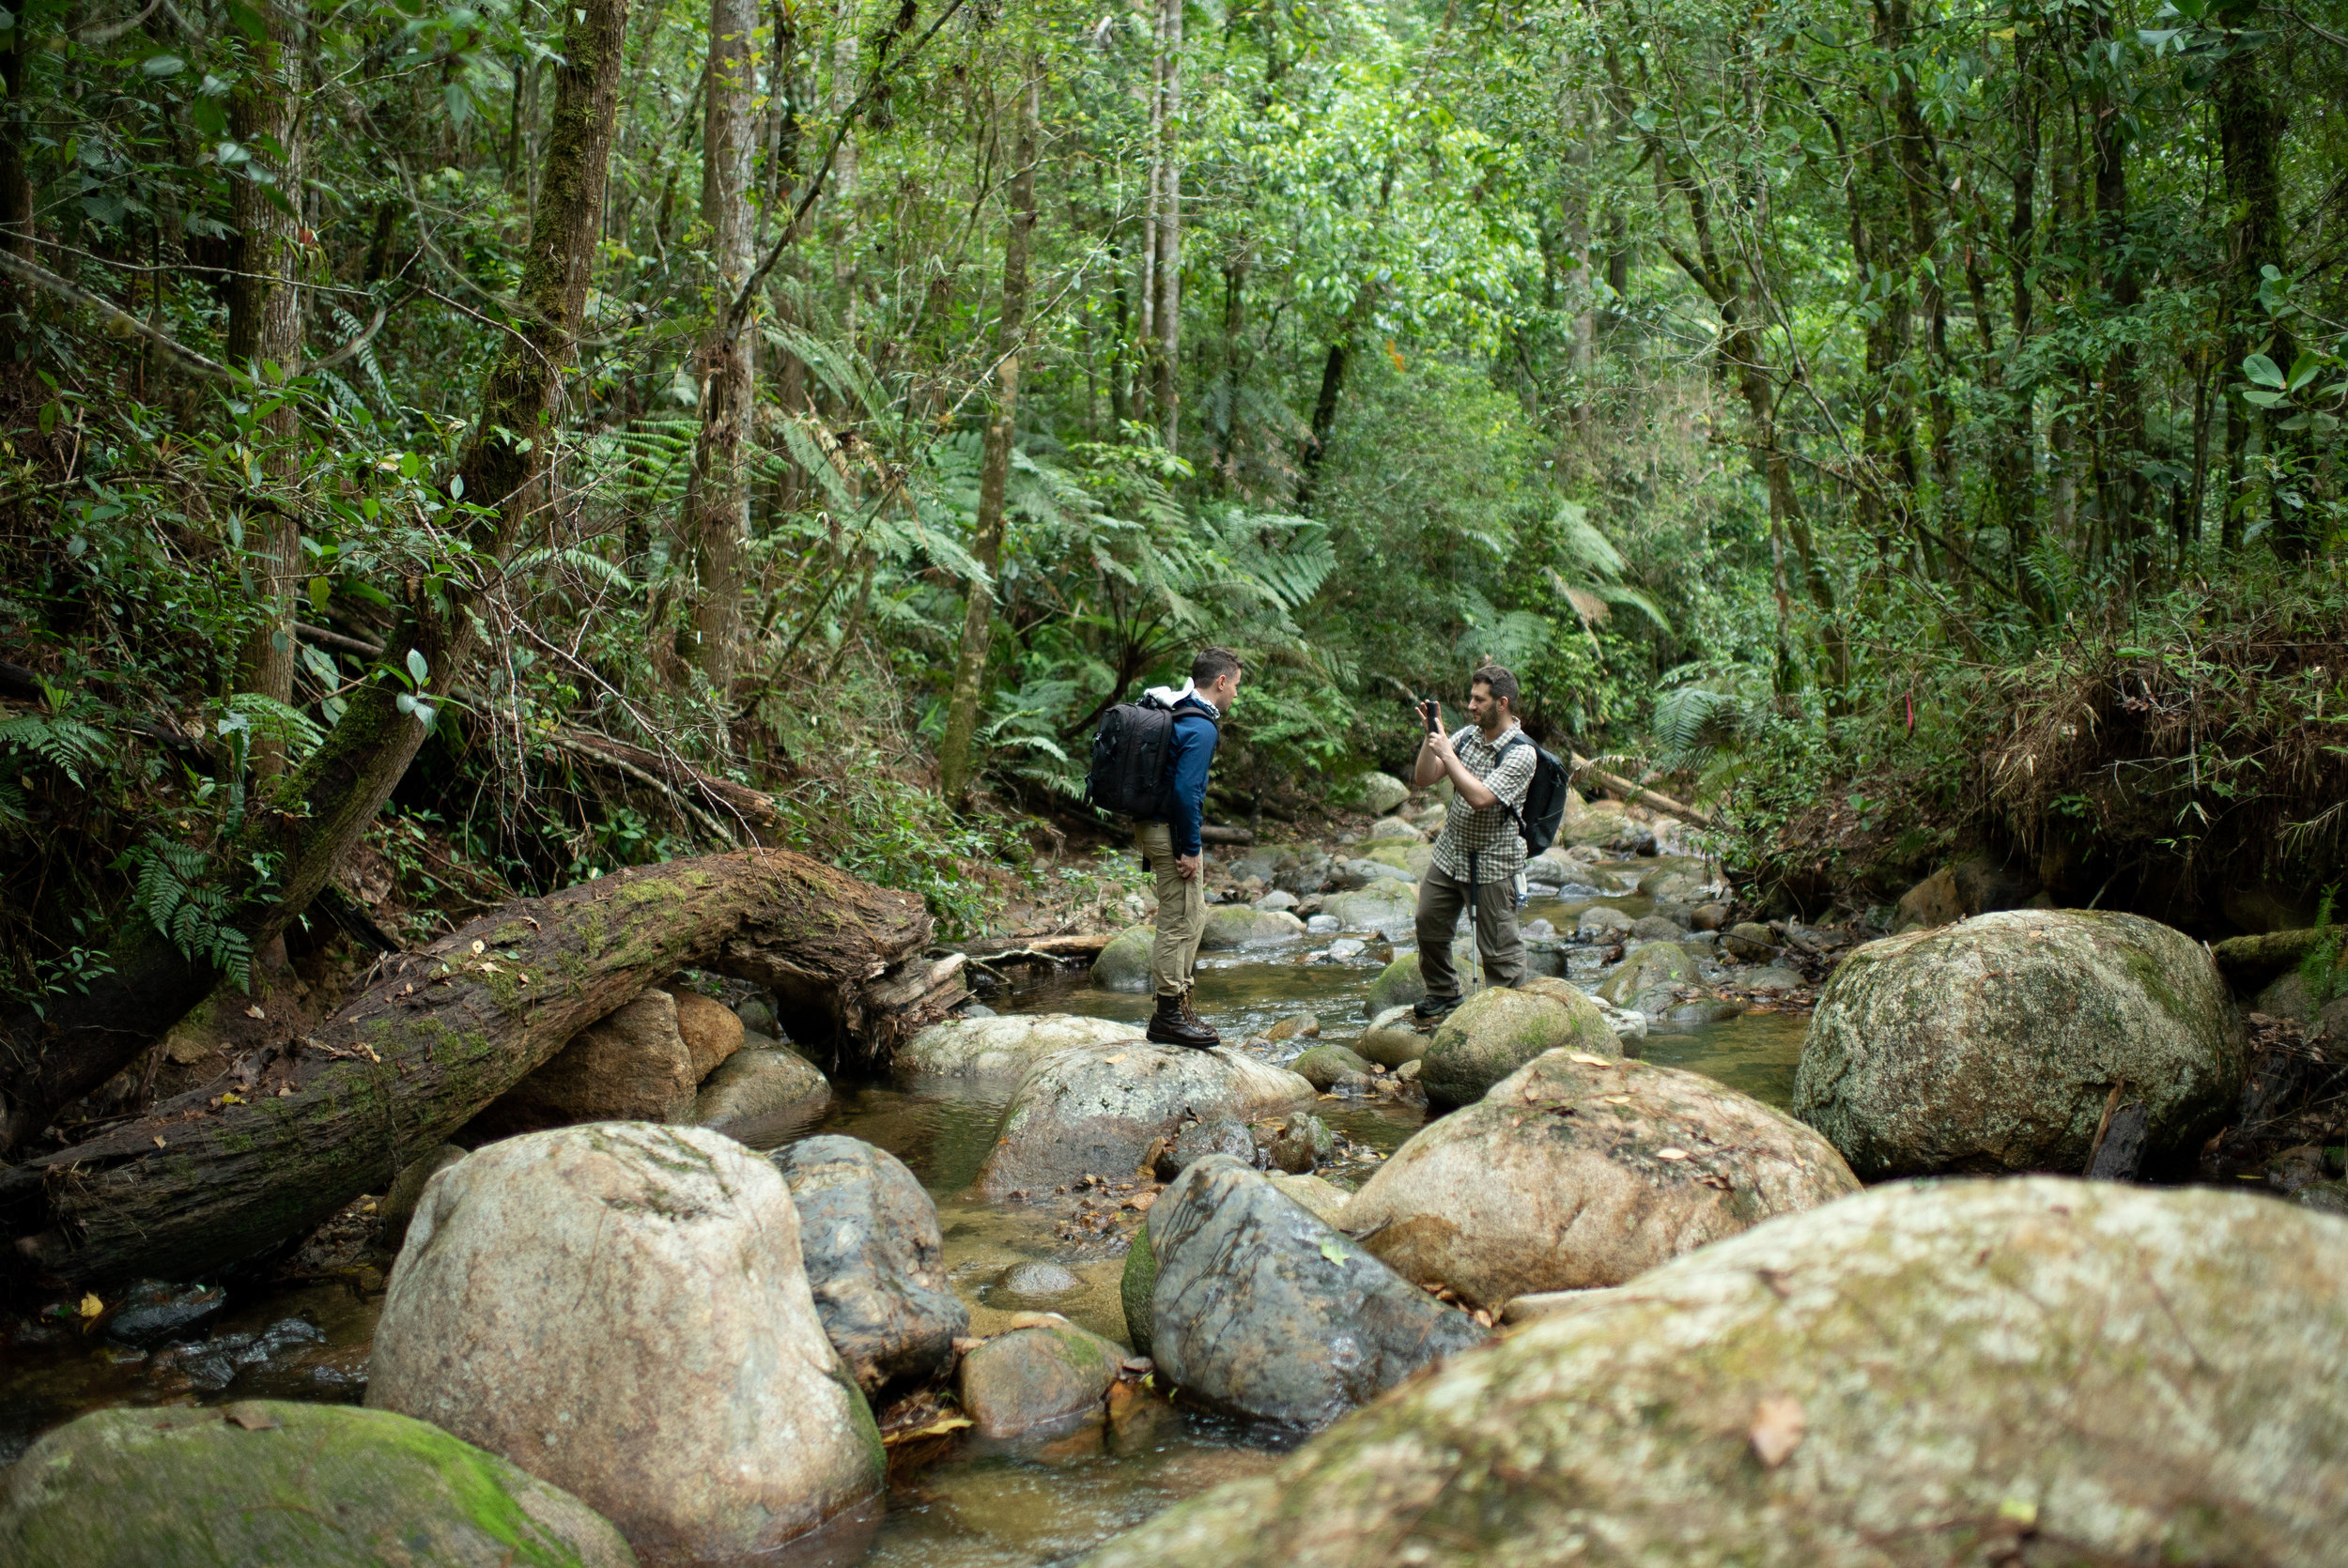 Jonathan Kolby and Ben Mirin in Cusuco National Park